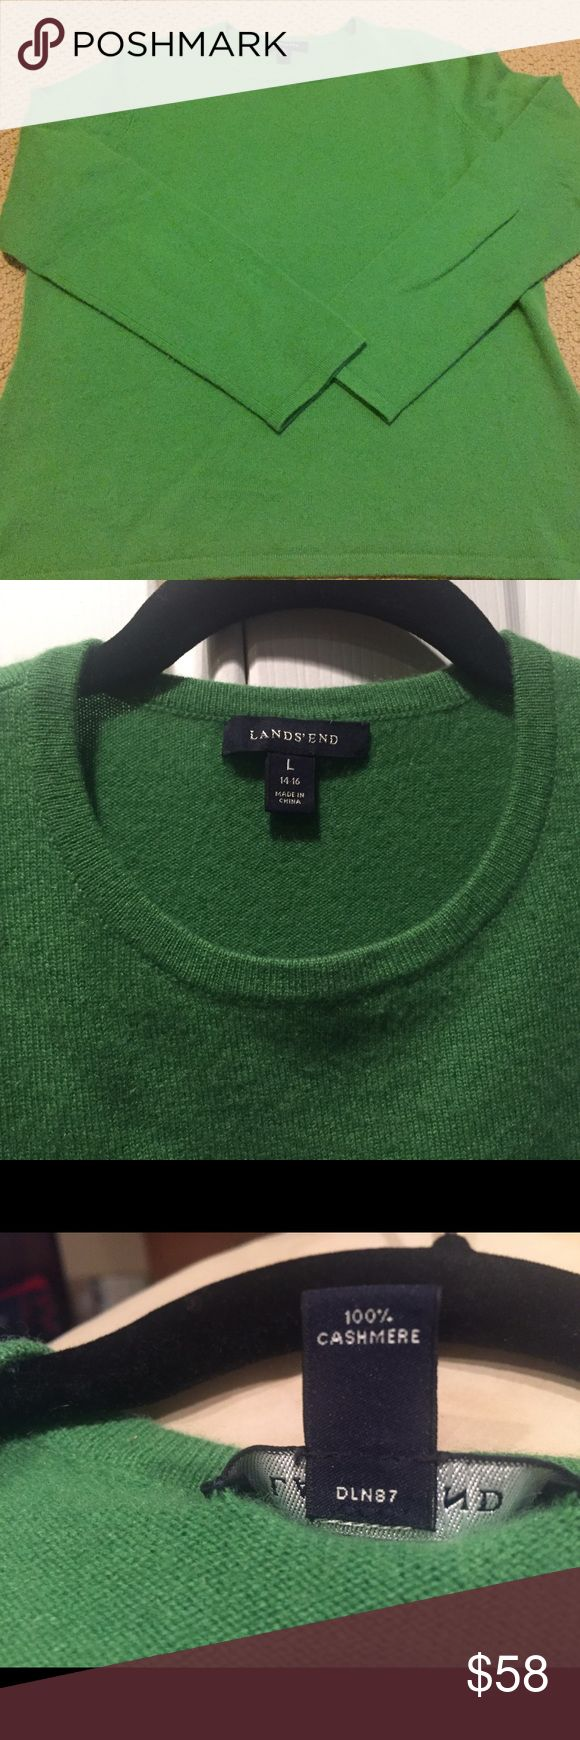 100% Cashmere Lands End Sweater, Green Large 14-16 From Lands End, soft warm & comfy 100% pure quality Cashmere Sweater. Beautiful pine 🌲 green color. Size Large (14-16), but fits more like a 12-14 IMO.  Very good pre-owned condition. I would say 8/10.  No rips, tears, or visible stains. Worn a handful of times, drycleaned & stored in a clean, smoke-free home. Lands' End Sweaters Crew & Scoop Necks